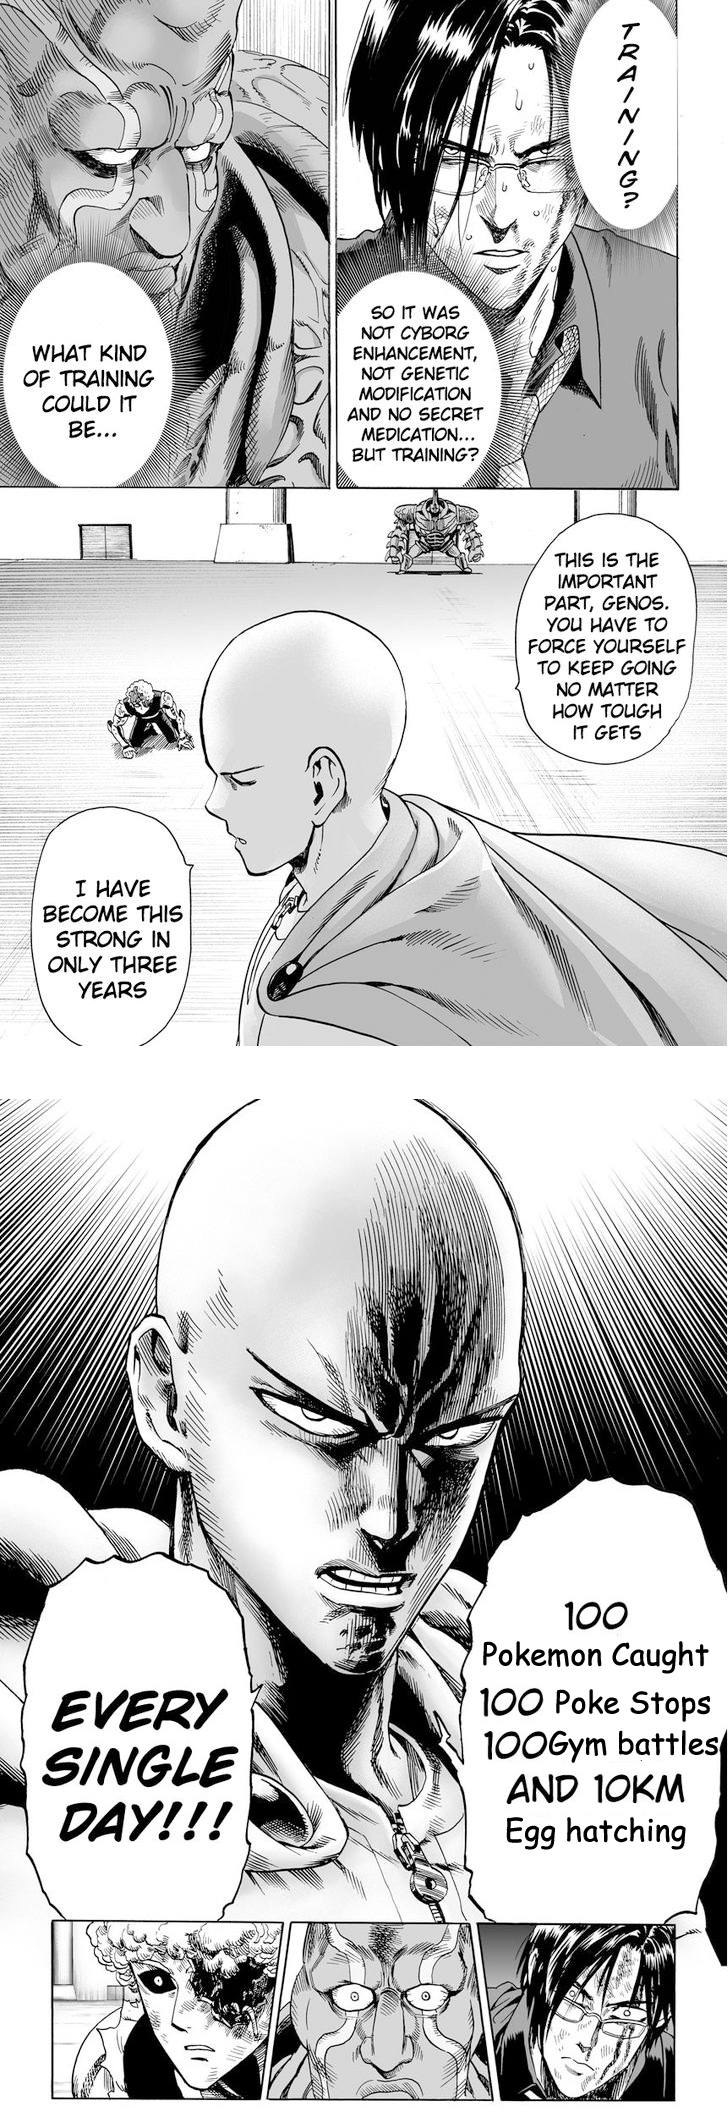 anime,one punch man,saitama,web comics